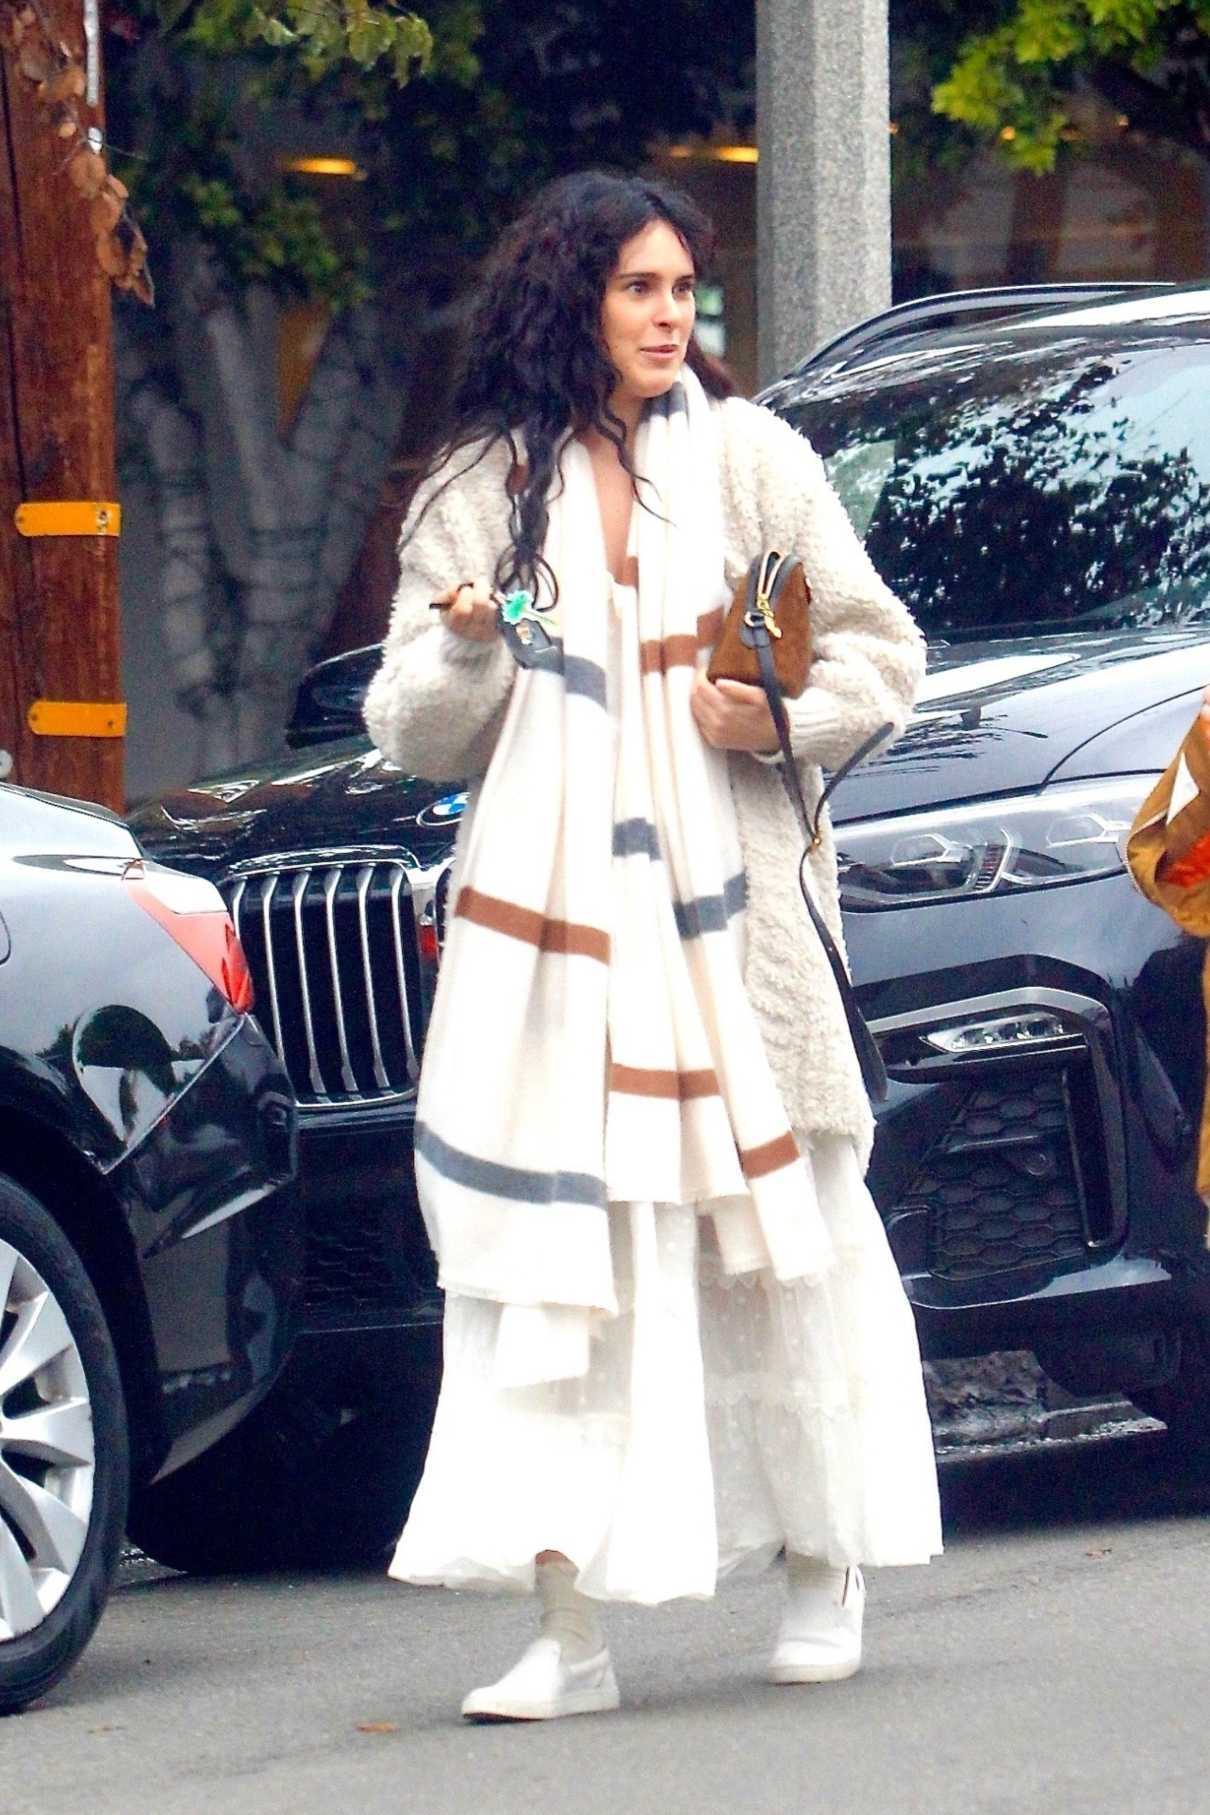 Rumer Willis in a White Dress